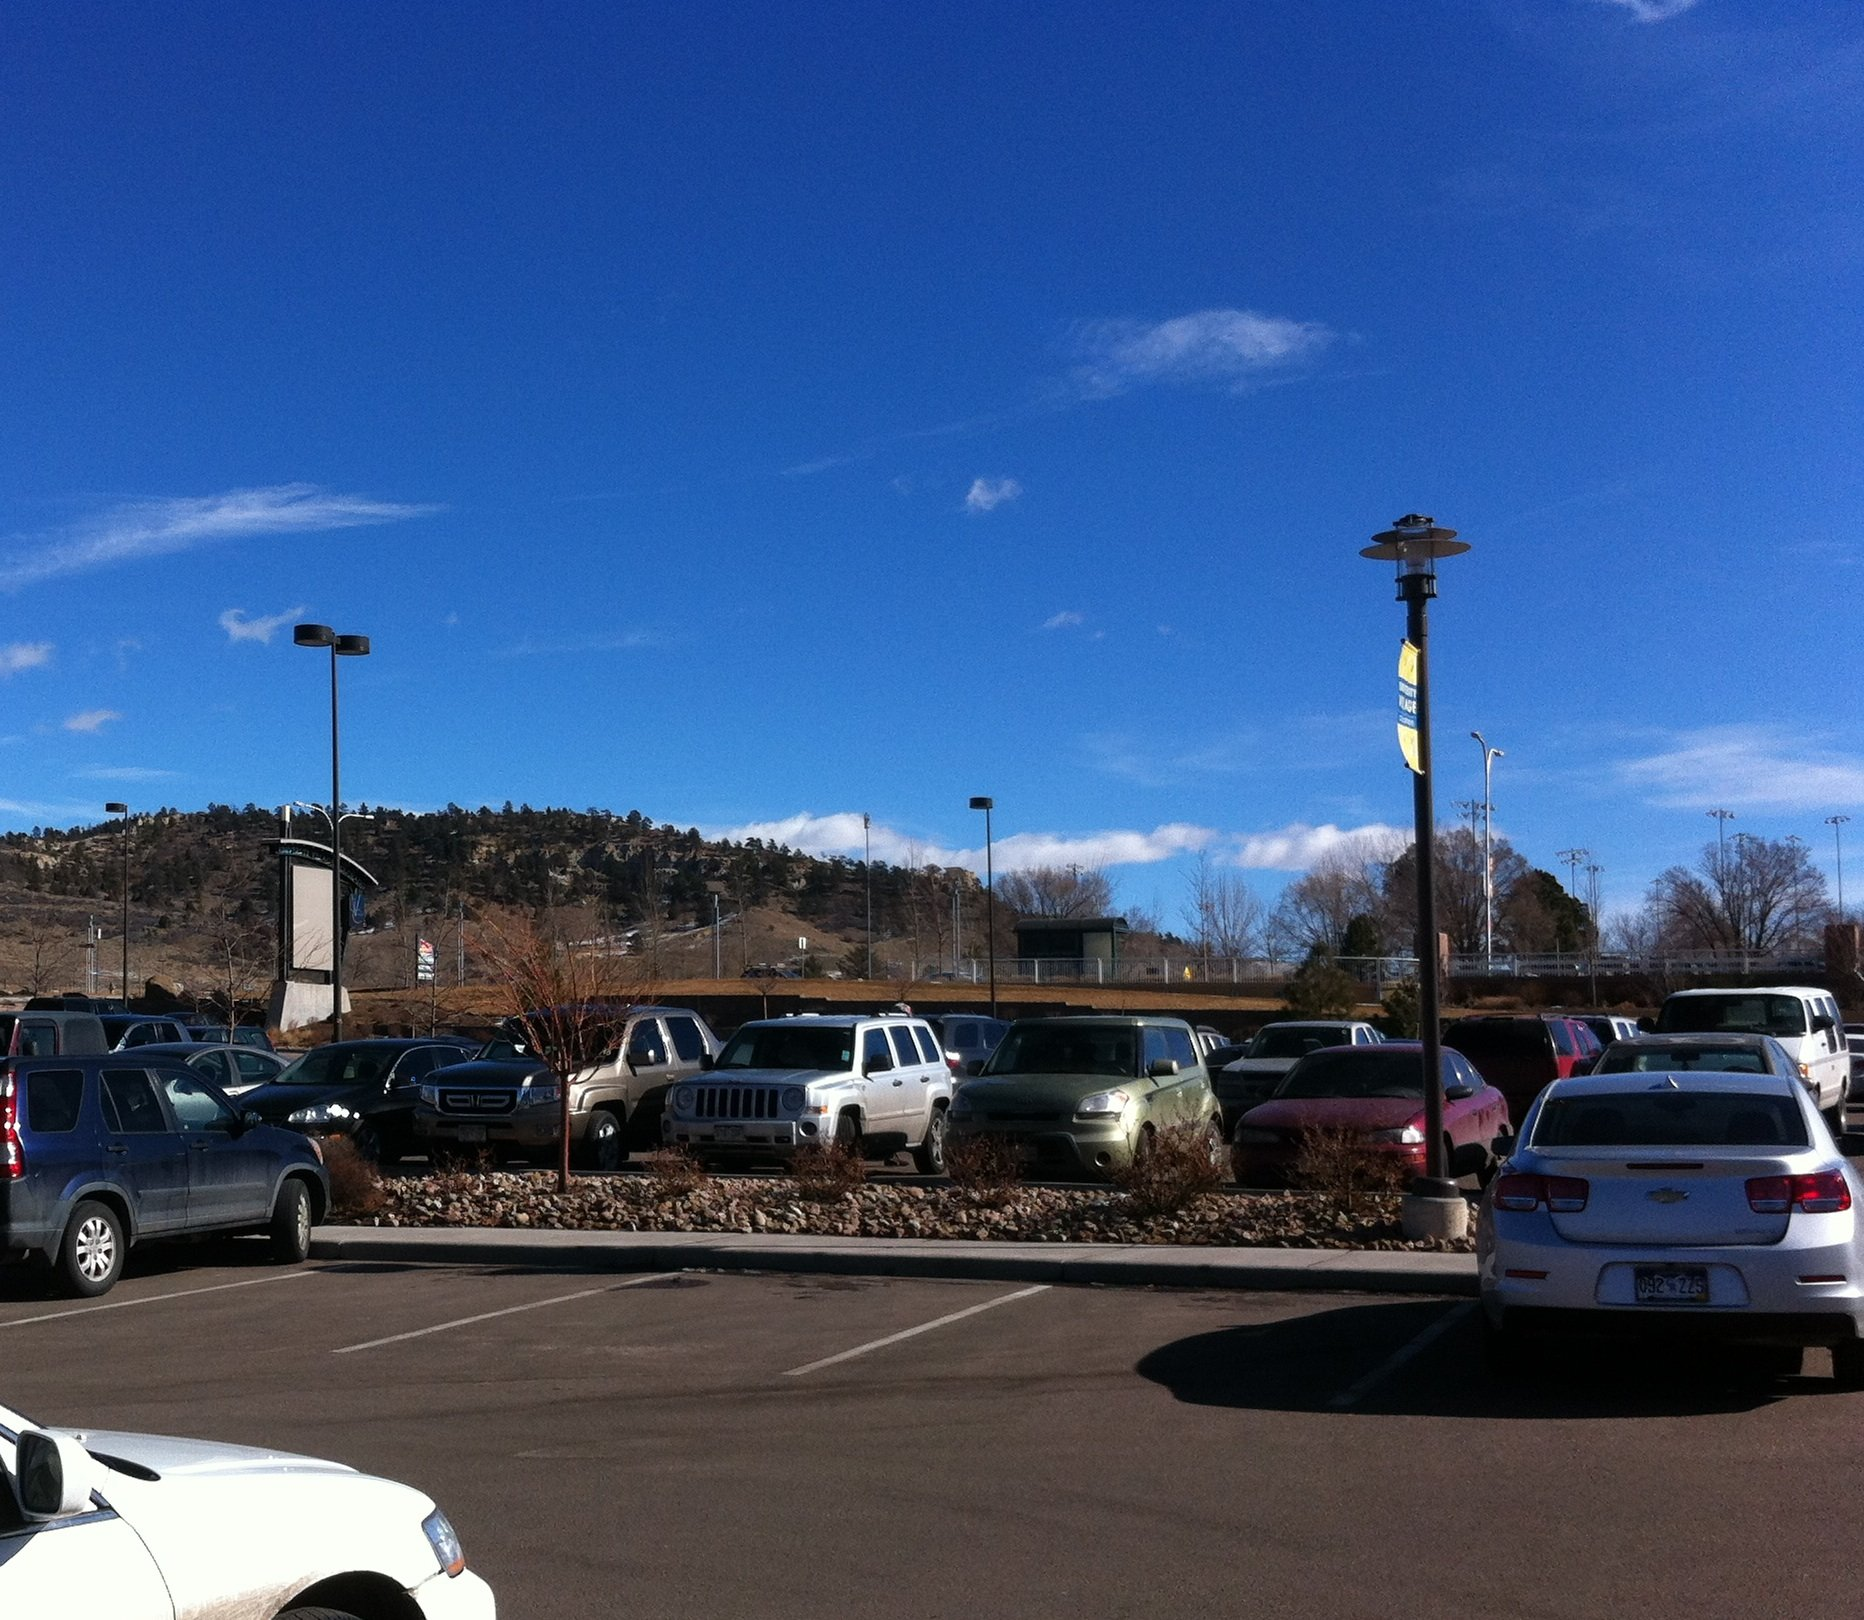 University Village Shopping Center, Colorado Springs